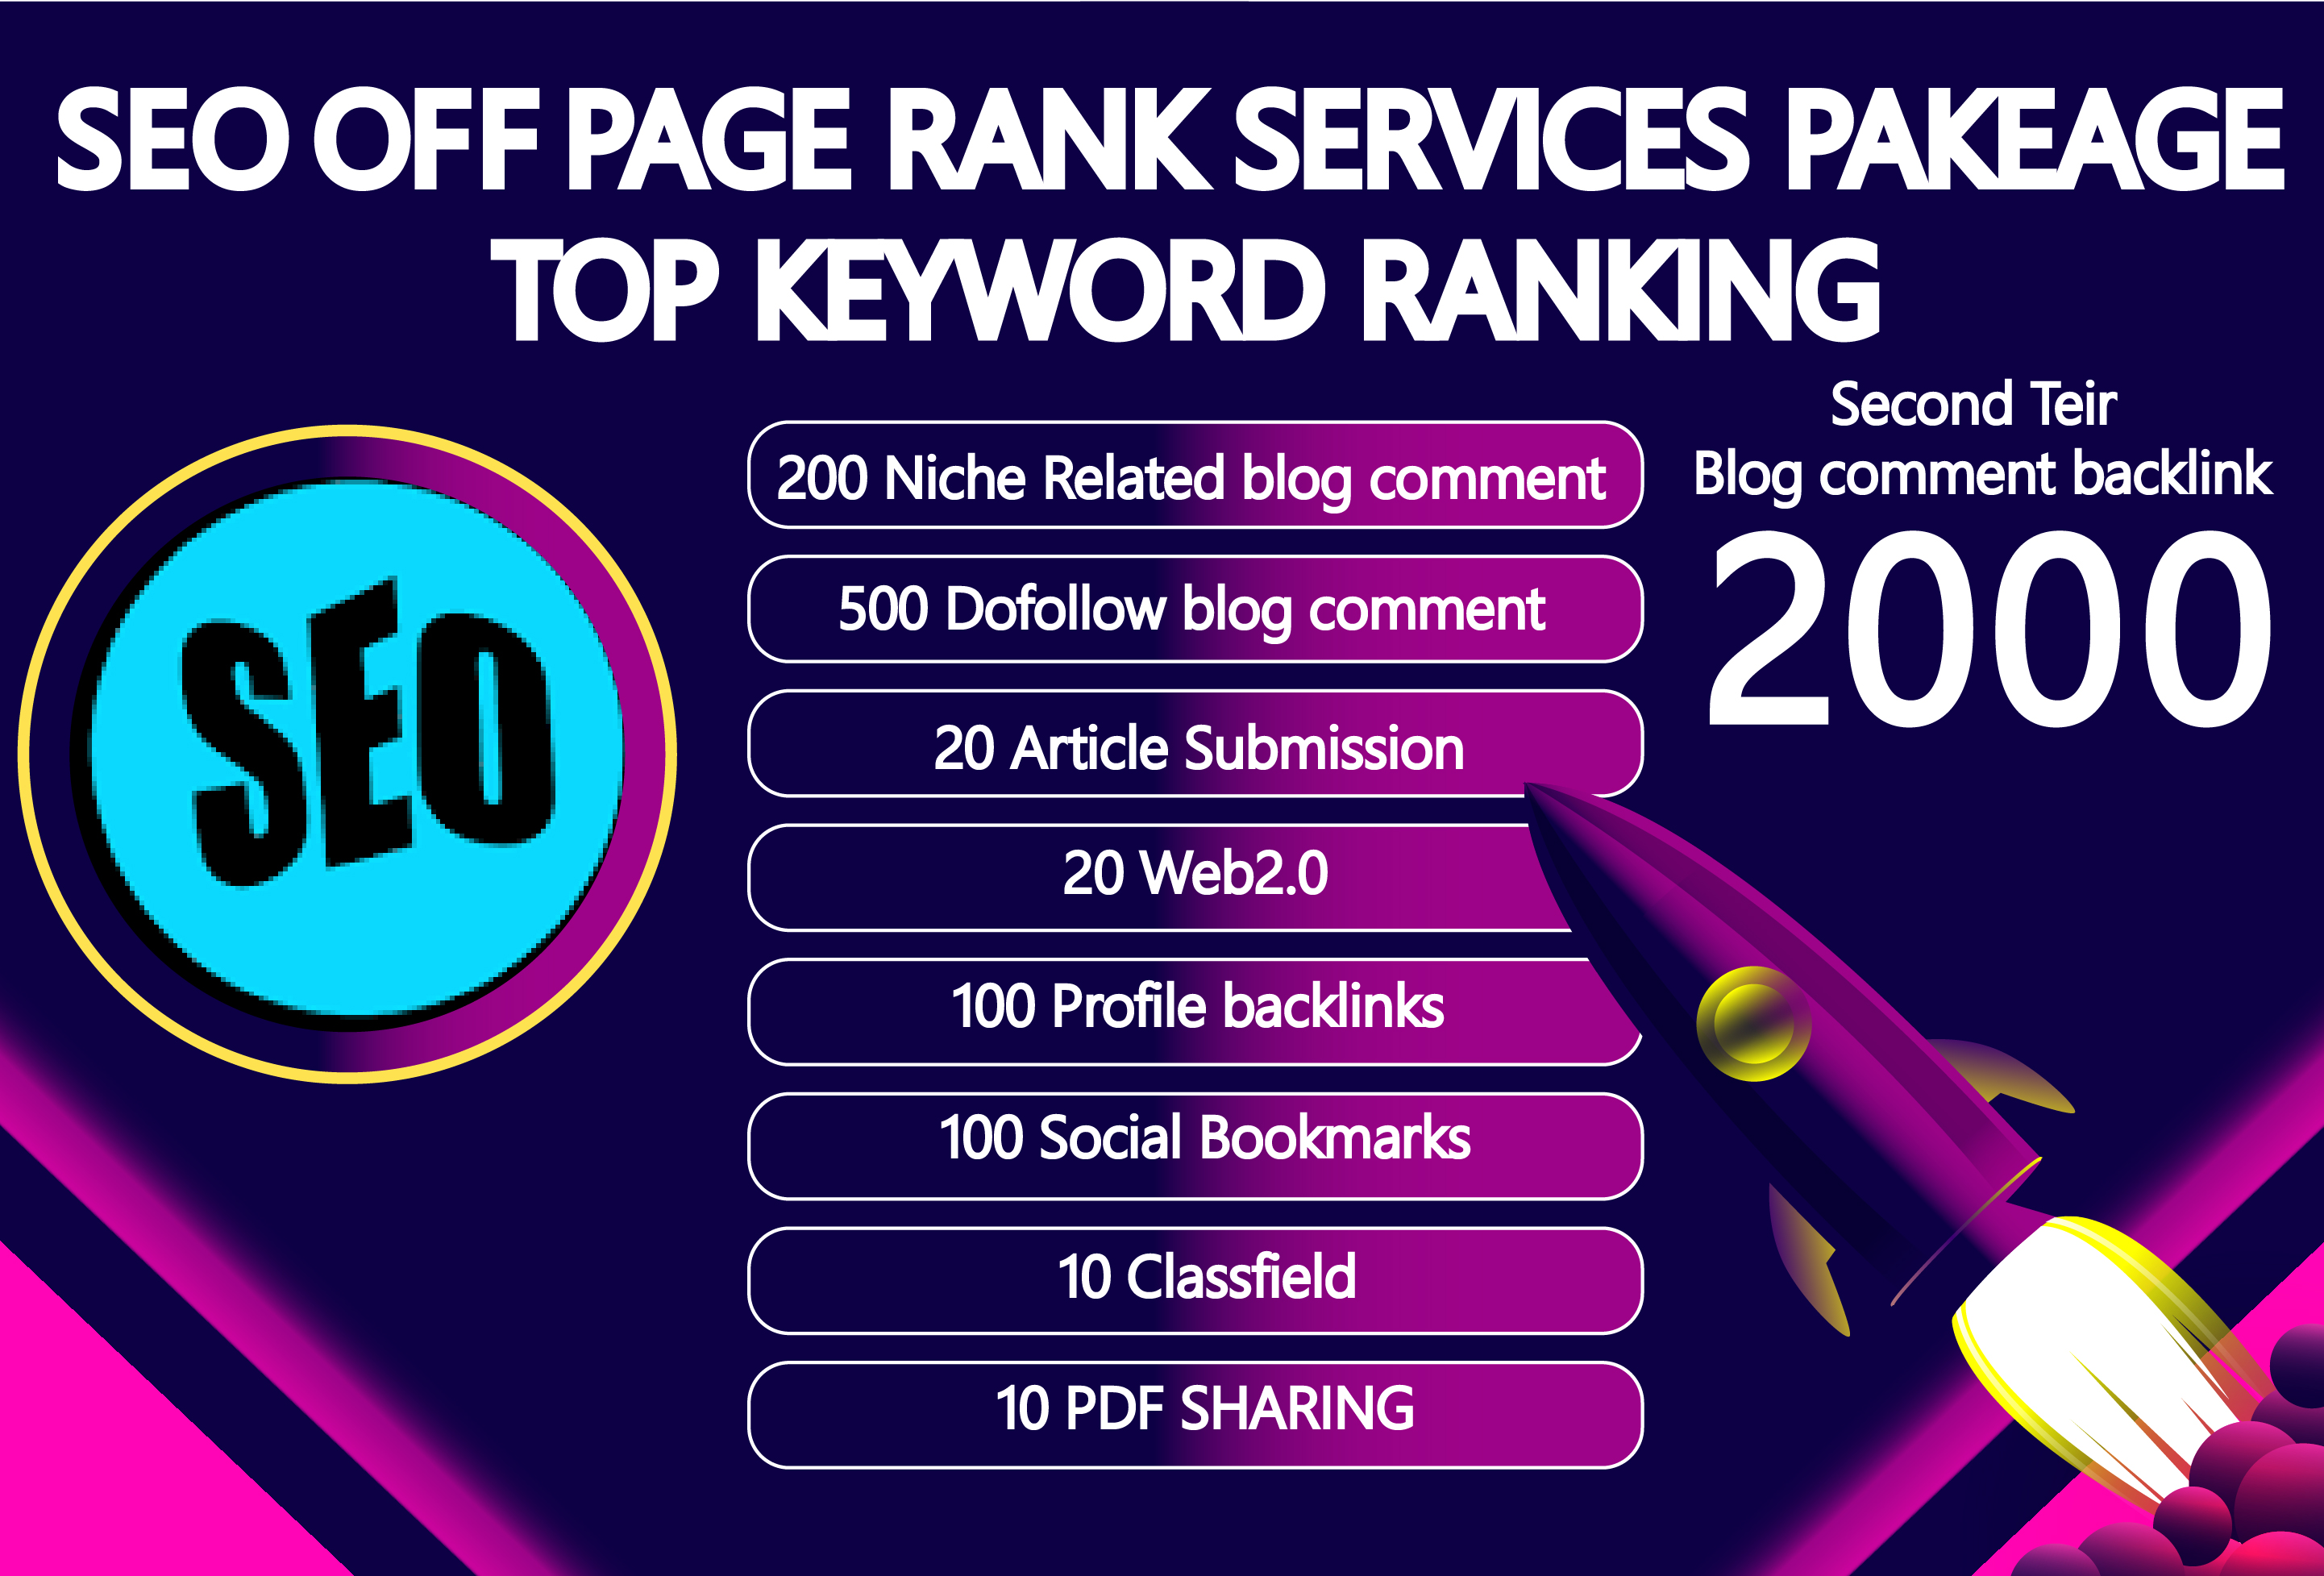 Best All in One SEO Package For TOP RANKING Your Website Keyword ranking